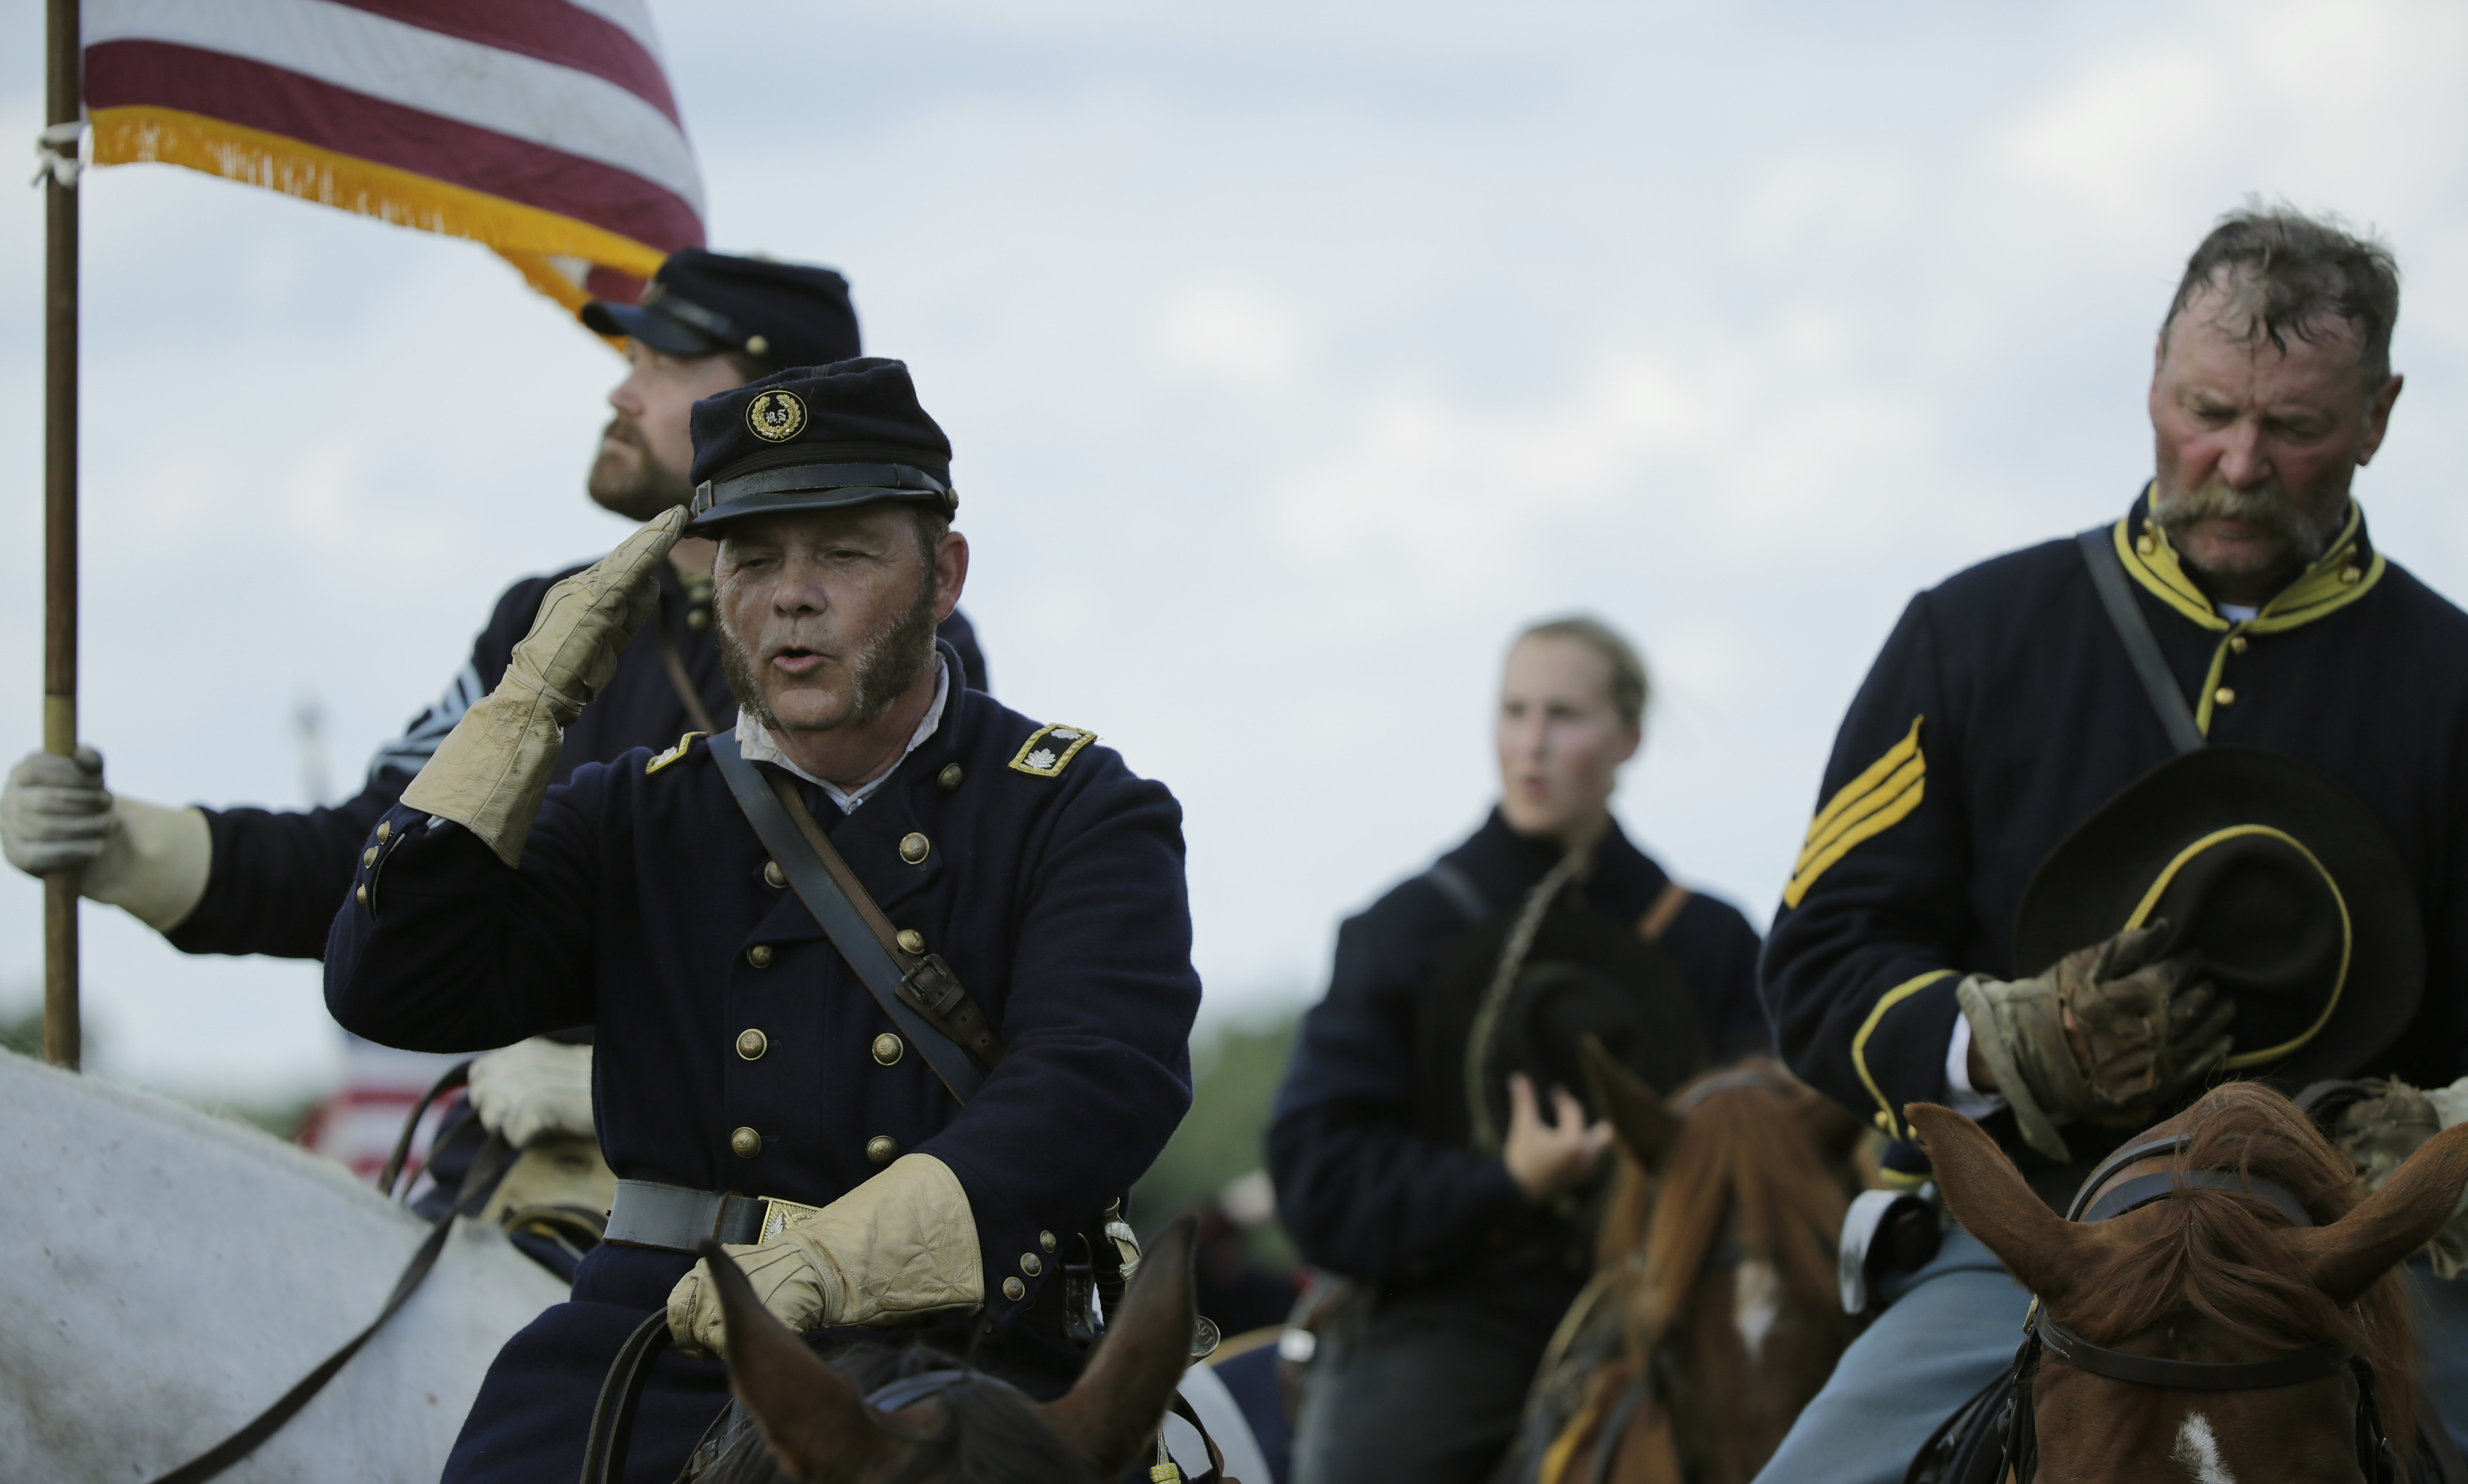 """Federal (Union) officers listen to the national anthem before the final battle of the Gettysburg conflict, """"Pickett's Charge,"""" between Confederate and Federal (Union) soldiers as part of re-enactment activities July 7, 2013, recognizing the 150th anniversary of the U.S. Civil War battle in Gettysburg, Pennsylvania. Gettysburg officials are expecting 250,000 visitors to visit the small south-central Pennsylvania borough of about 7,700 residents for the anniversary. REUTERS/Gary Cameron"""